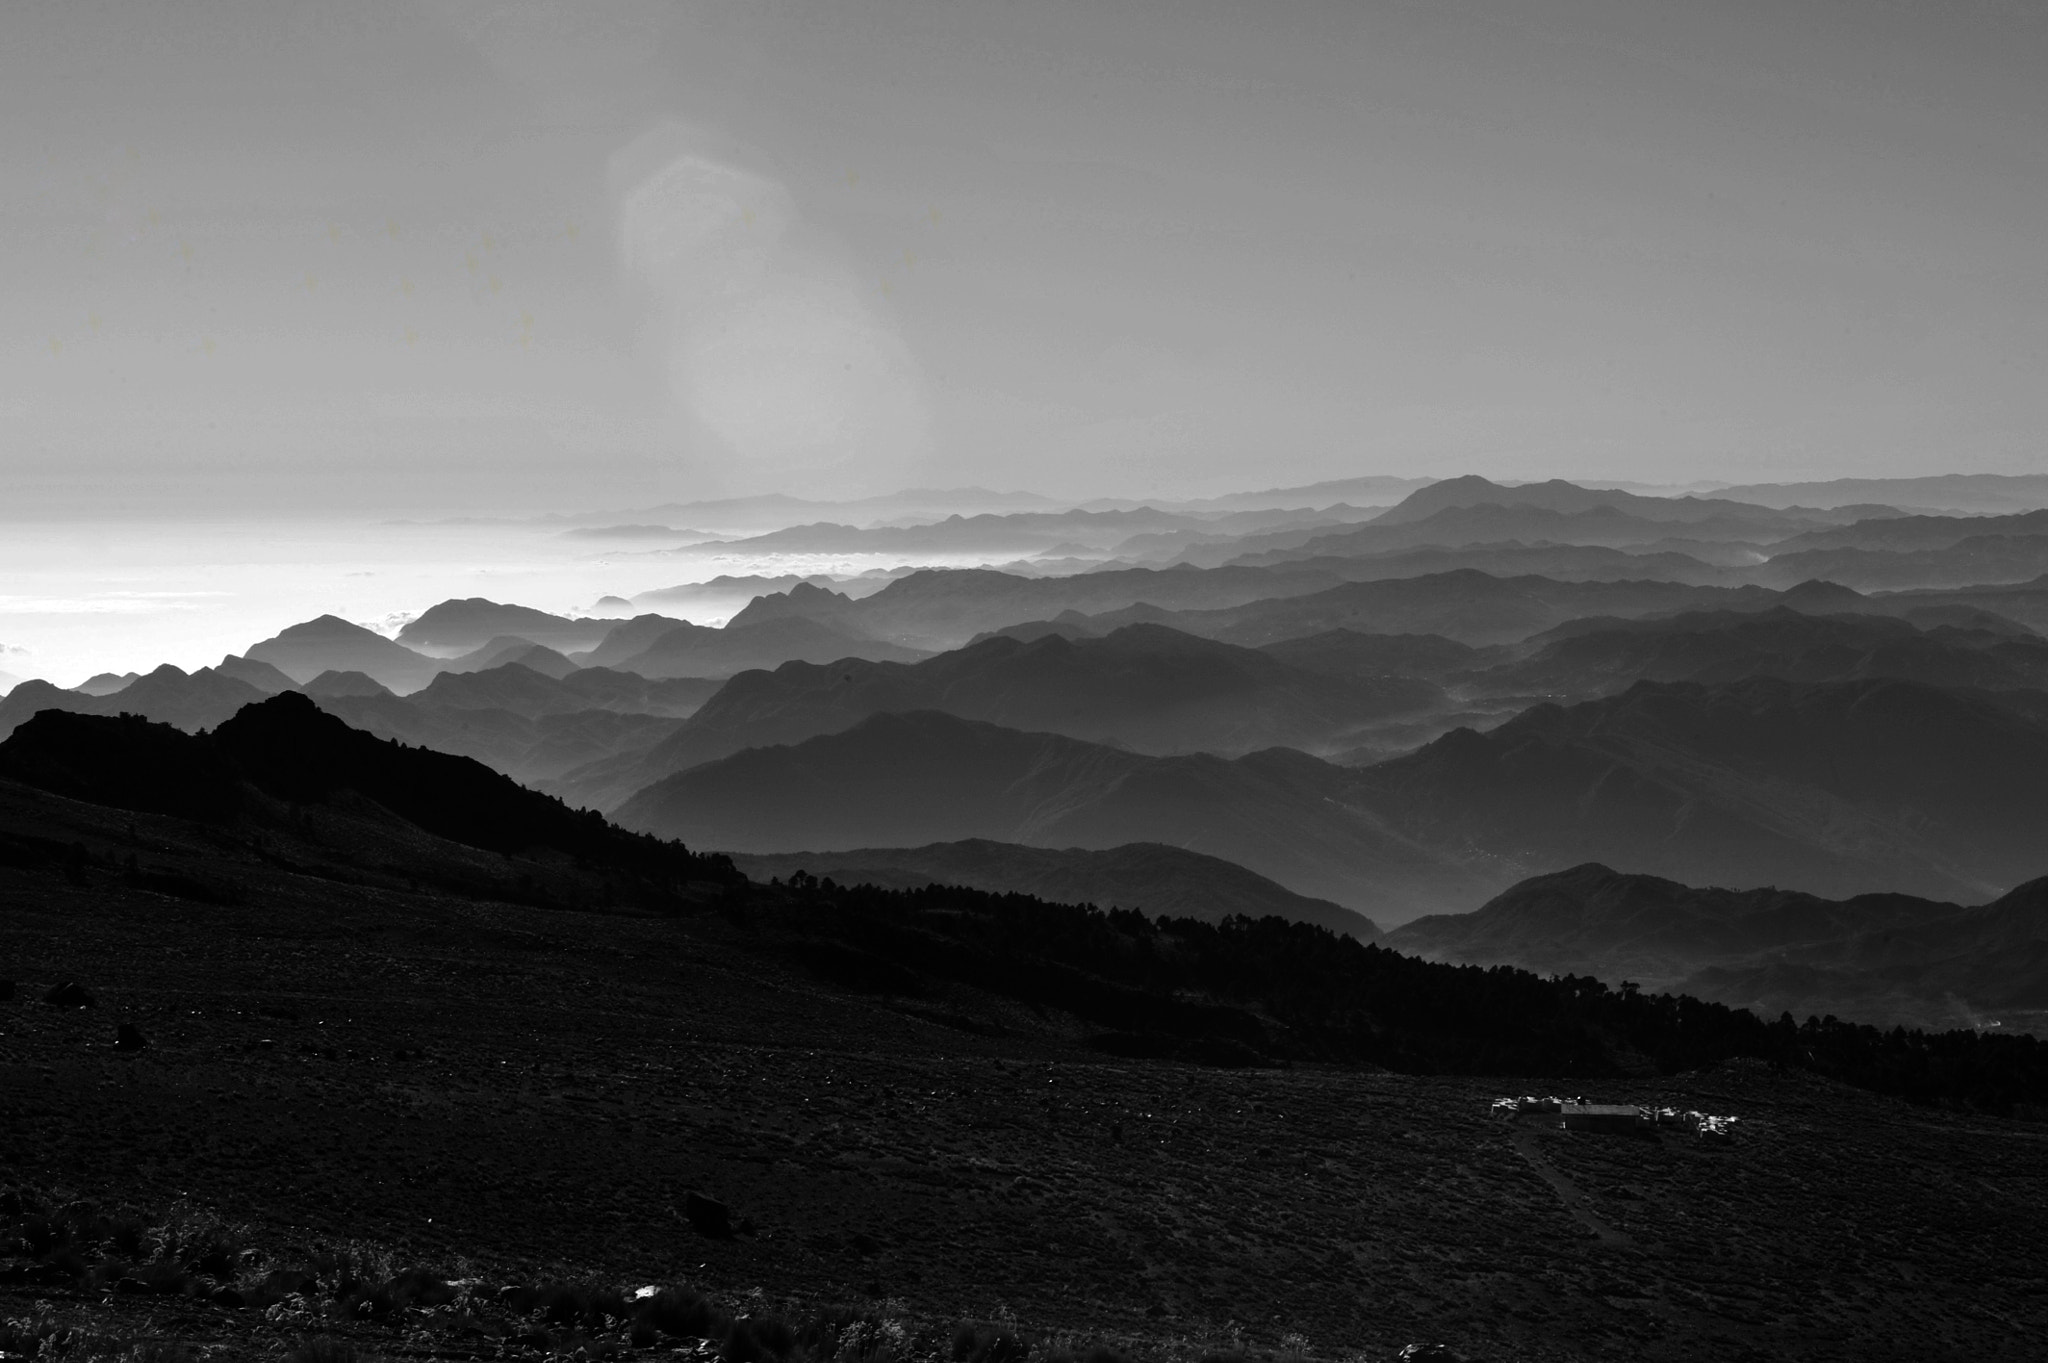 Photograph Sea of mountains by Cristobal Garciaferro Rubio on 500px